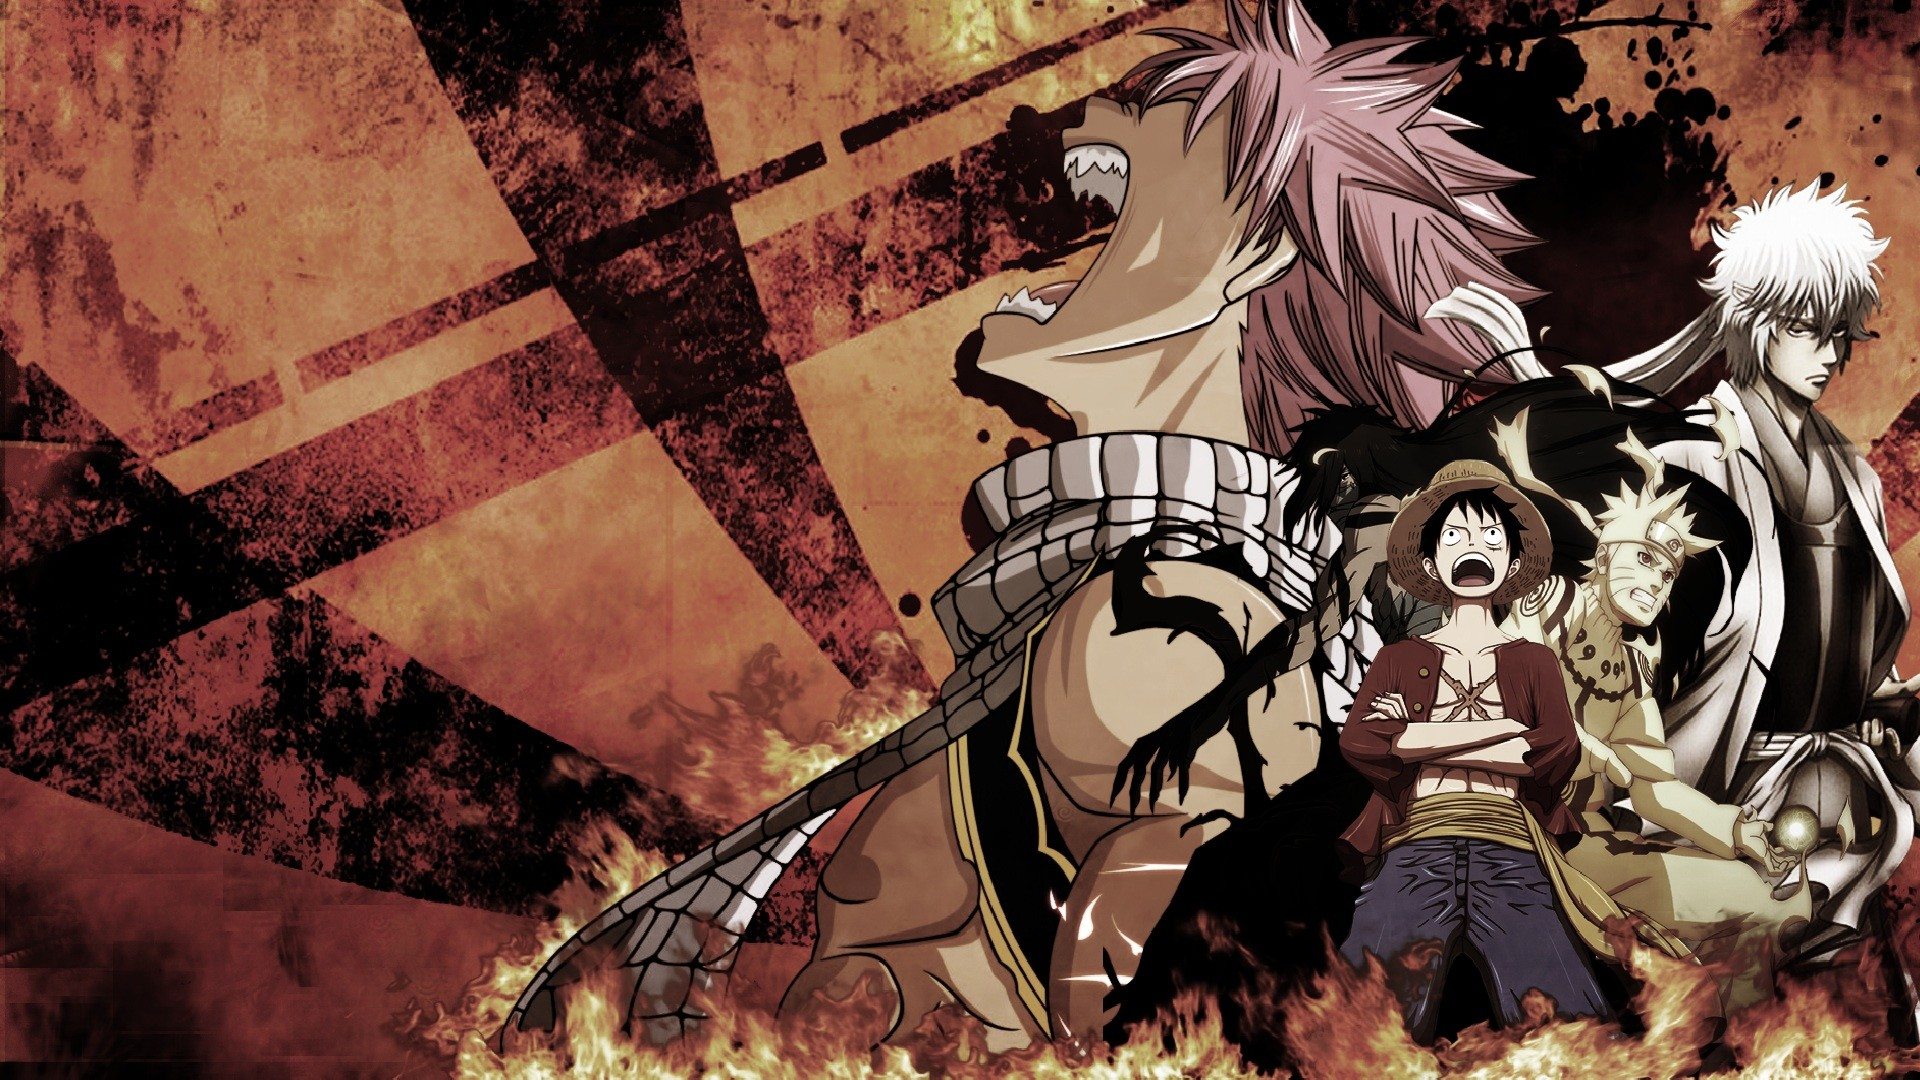 Badass Anime Wallpaper 1920x1080 (63+ Images